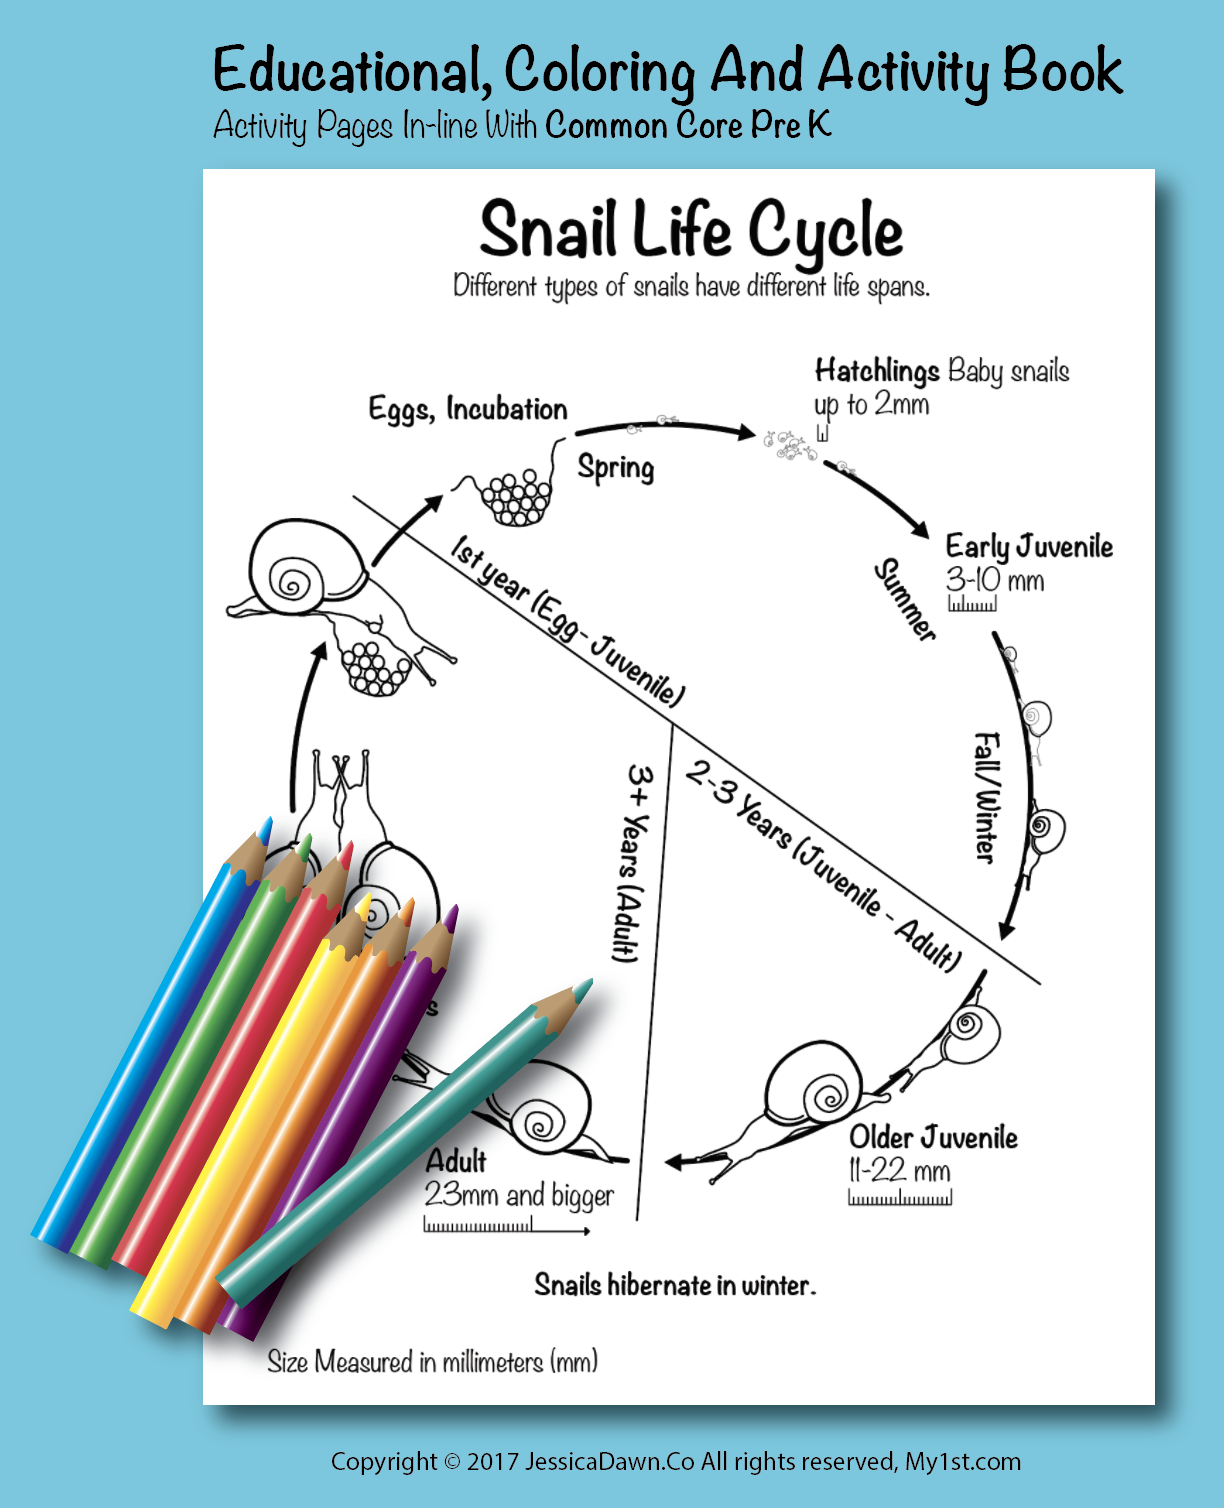 Snail Life Cycle My1st Coloring Page Fun And